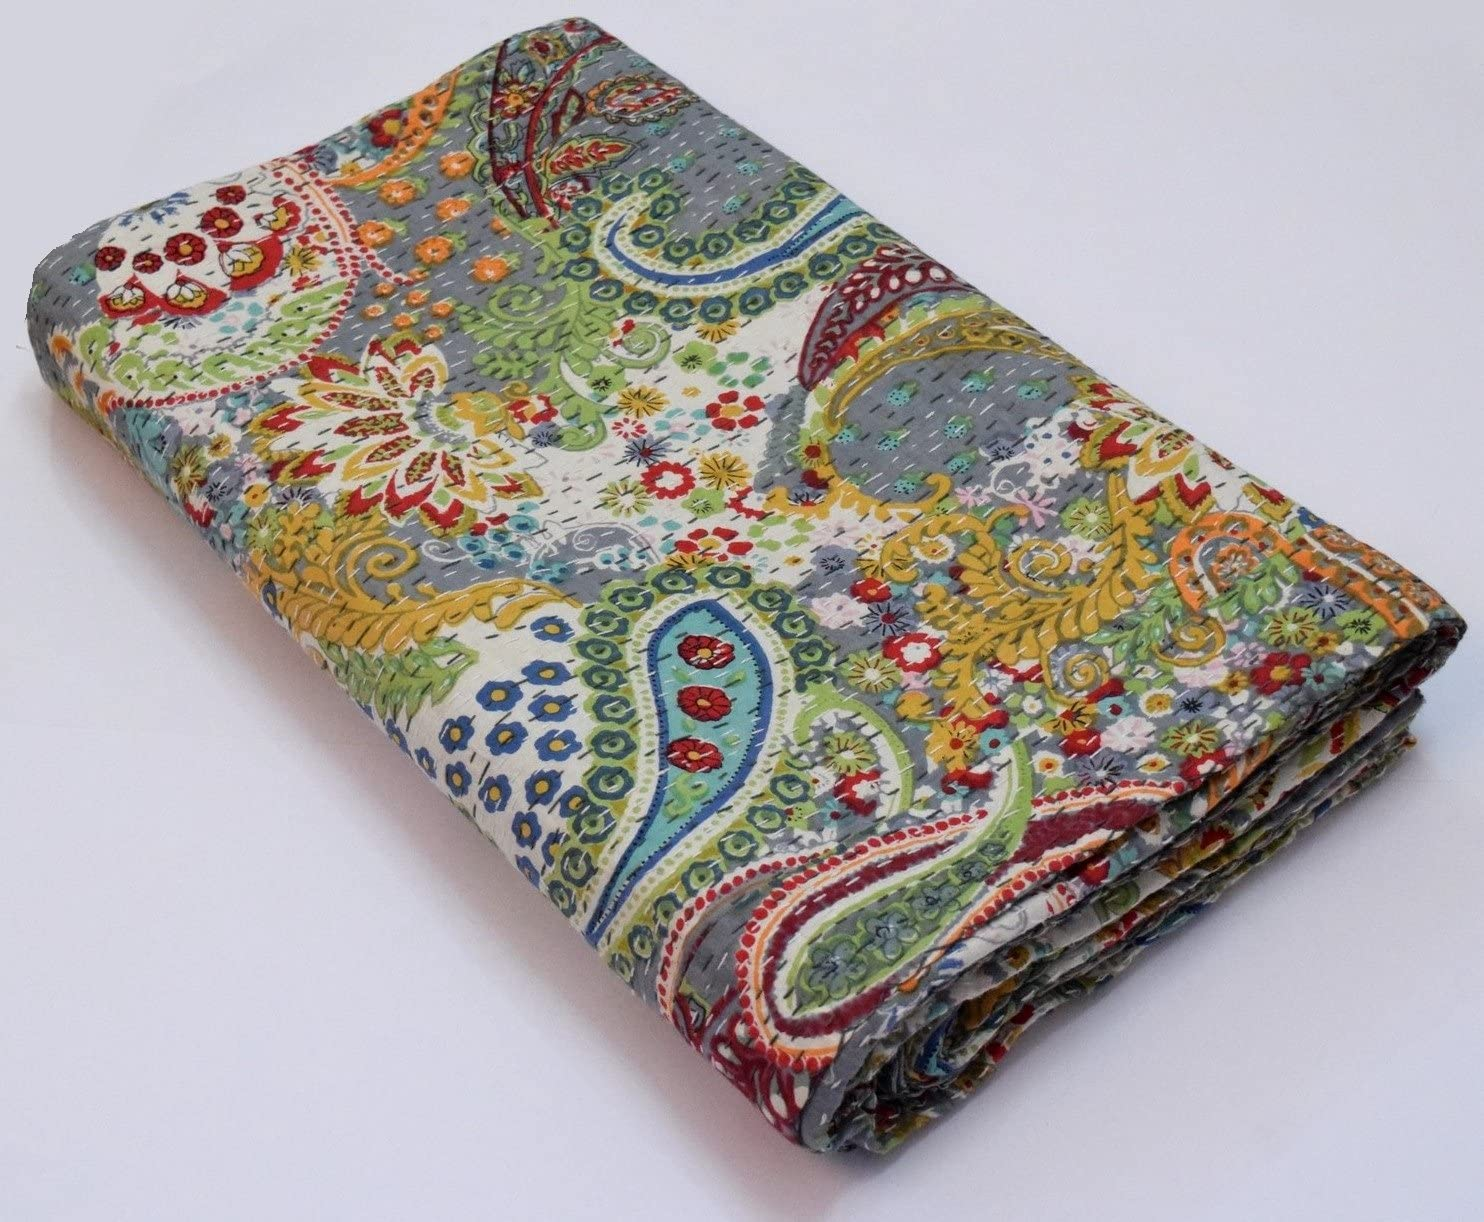 Indian Handmade Paisley Print Kantha Quilt  Cotton Throw Reversible Bedspread